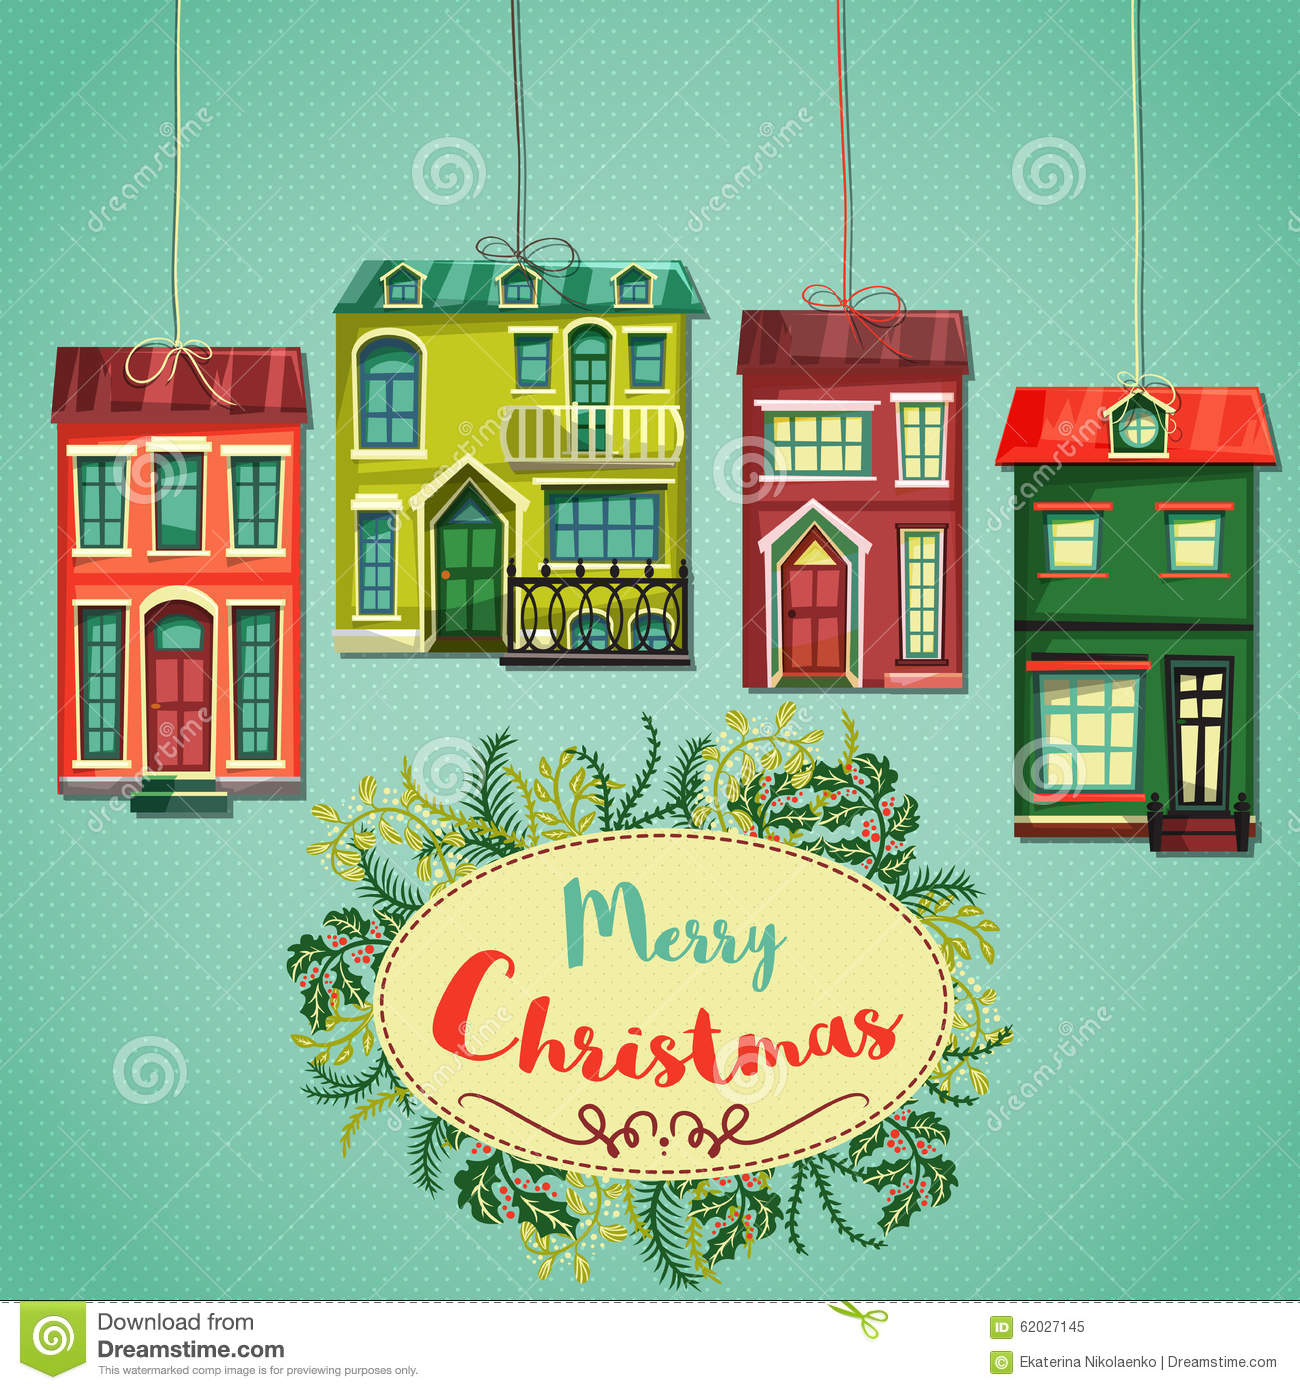 merry christmas retro card  vintage cartoon city houses and wreath of christmas plants  stock